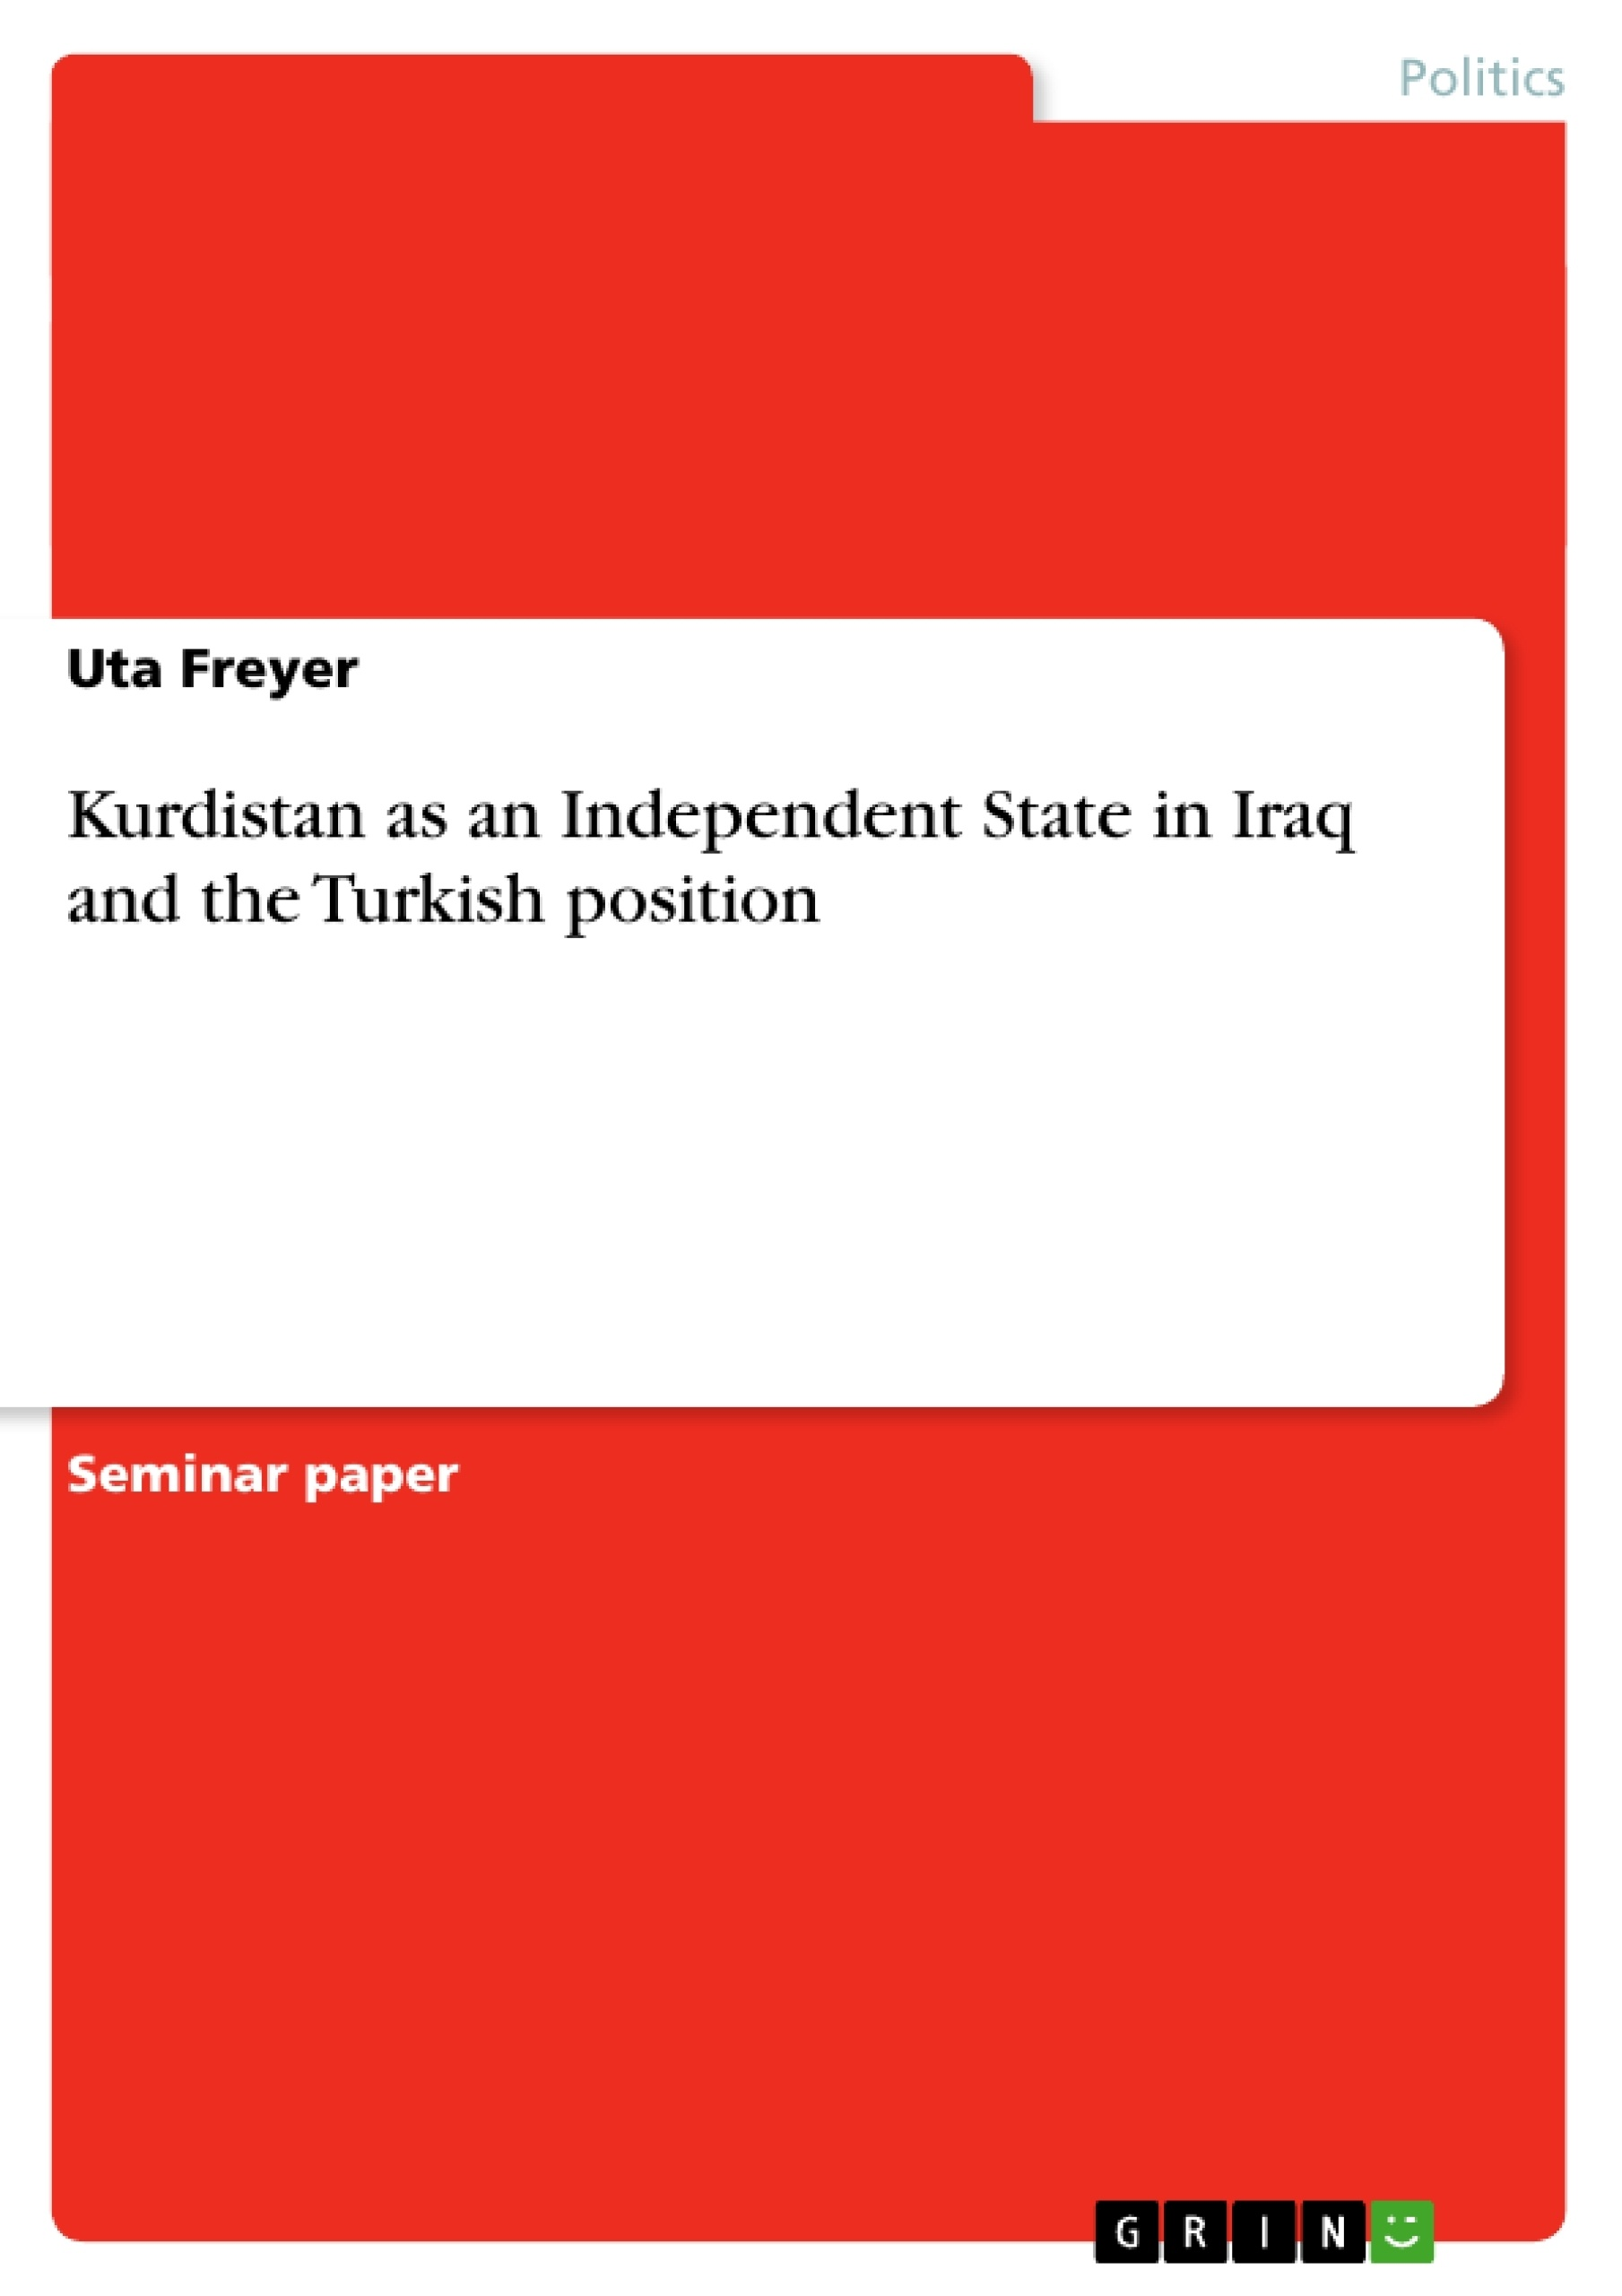 Title: Kurdistan as an Independent State in Iraq and the Turkish position